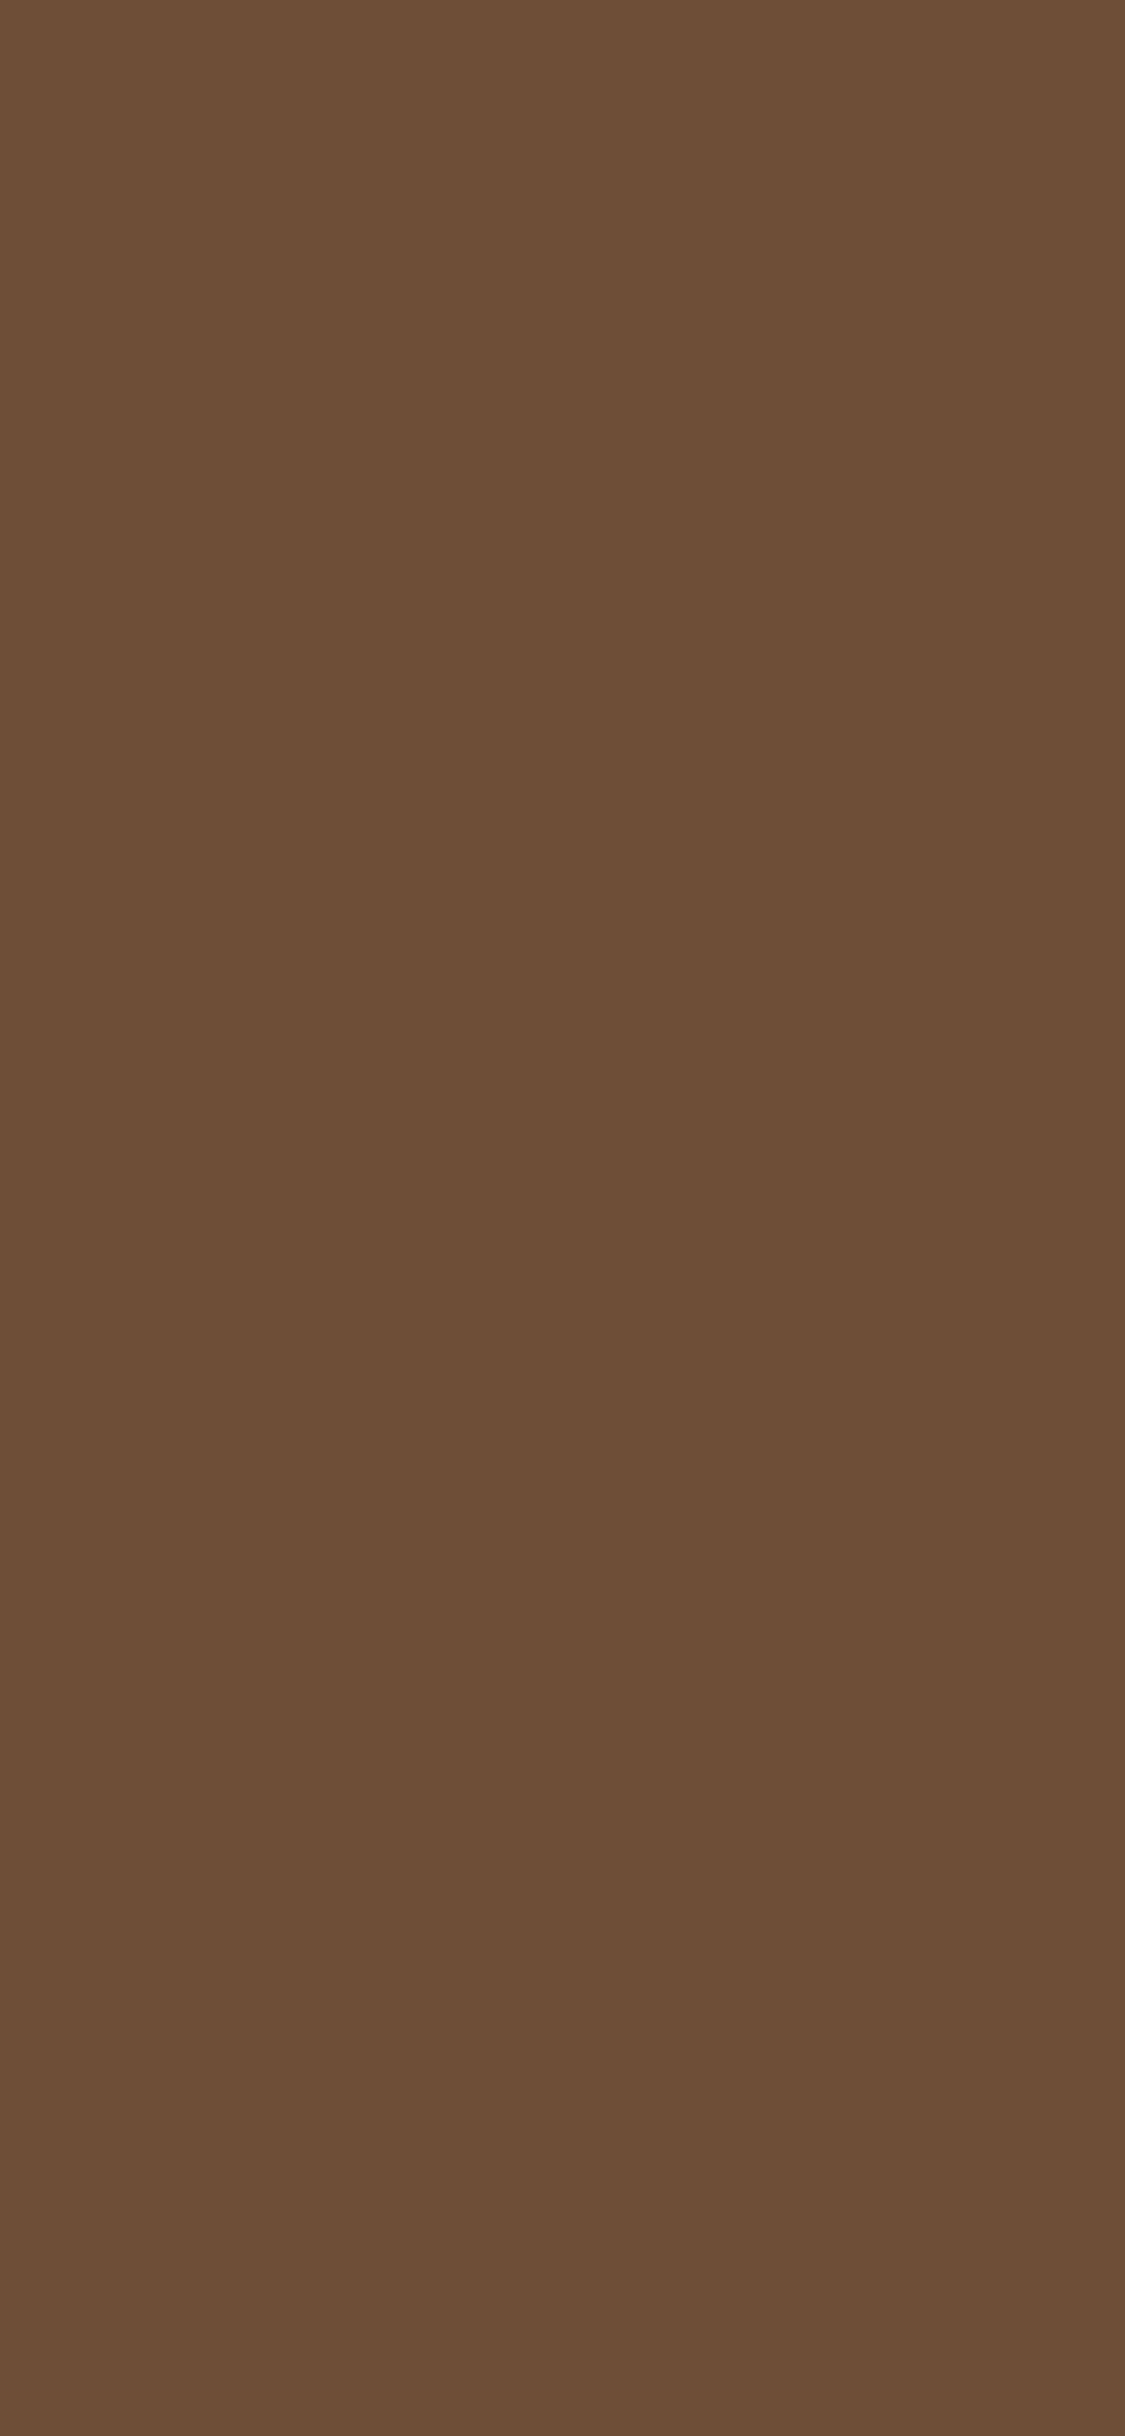 1125x2436 Tuscan Brown Solid Color Background